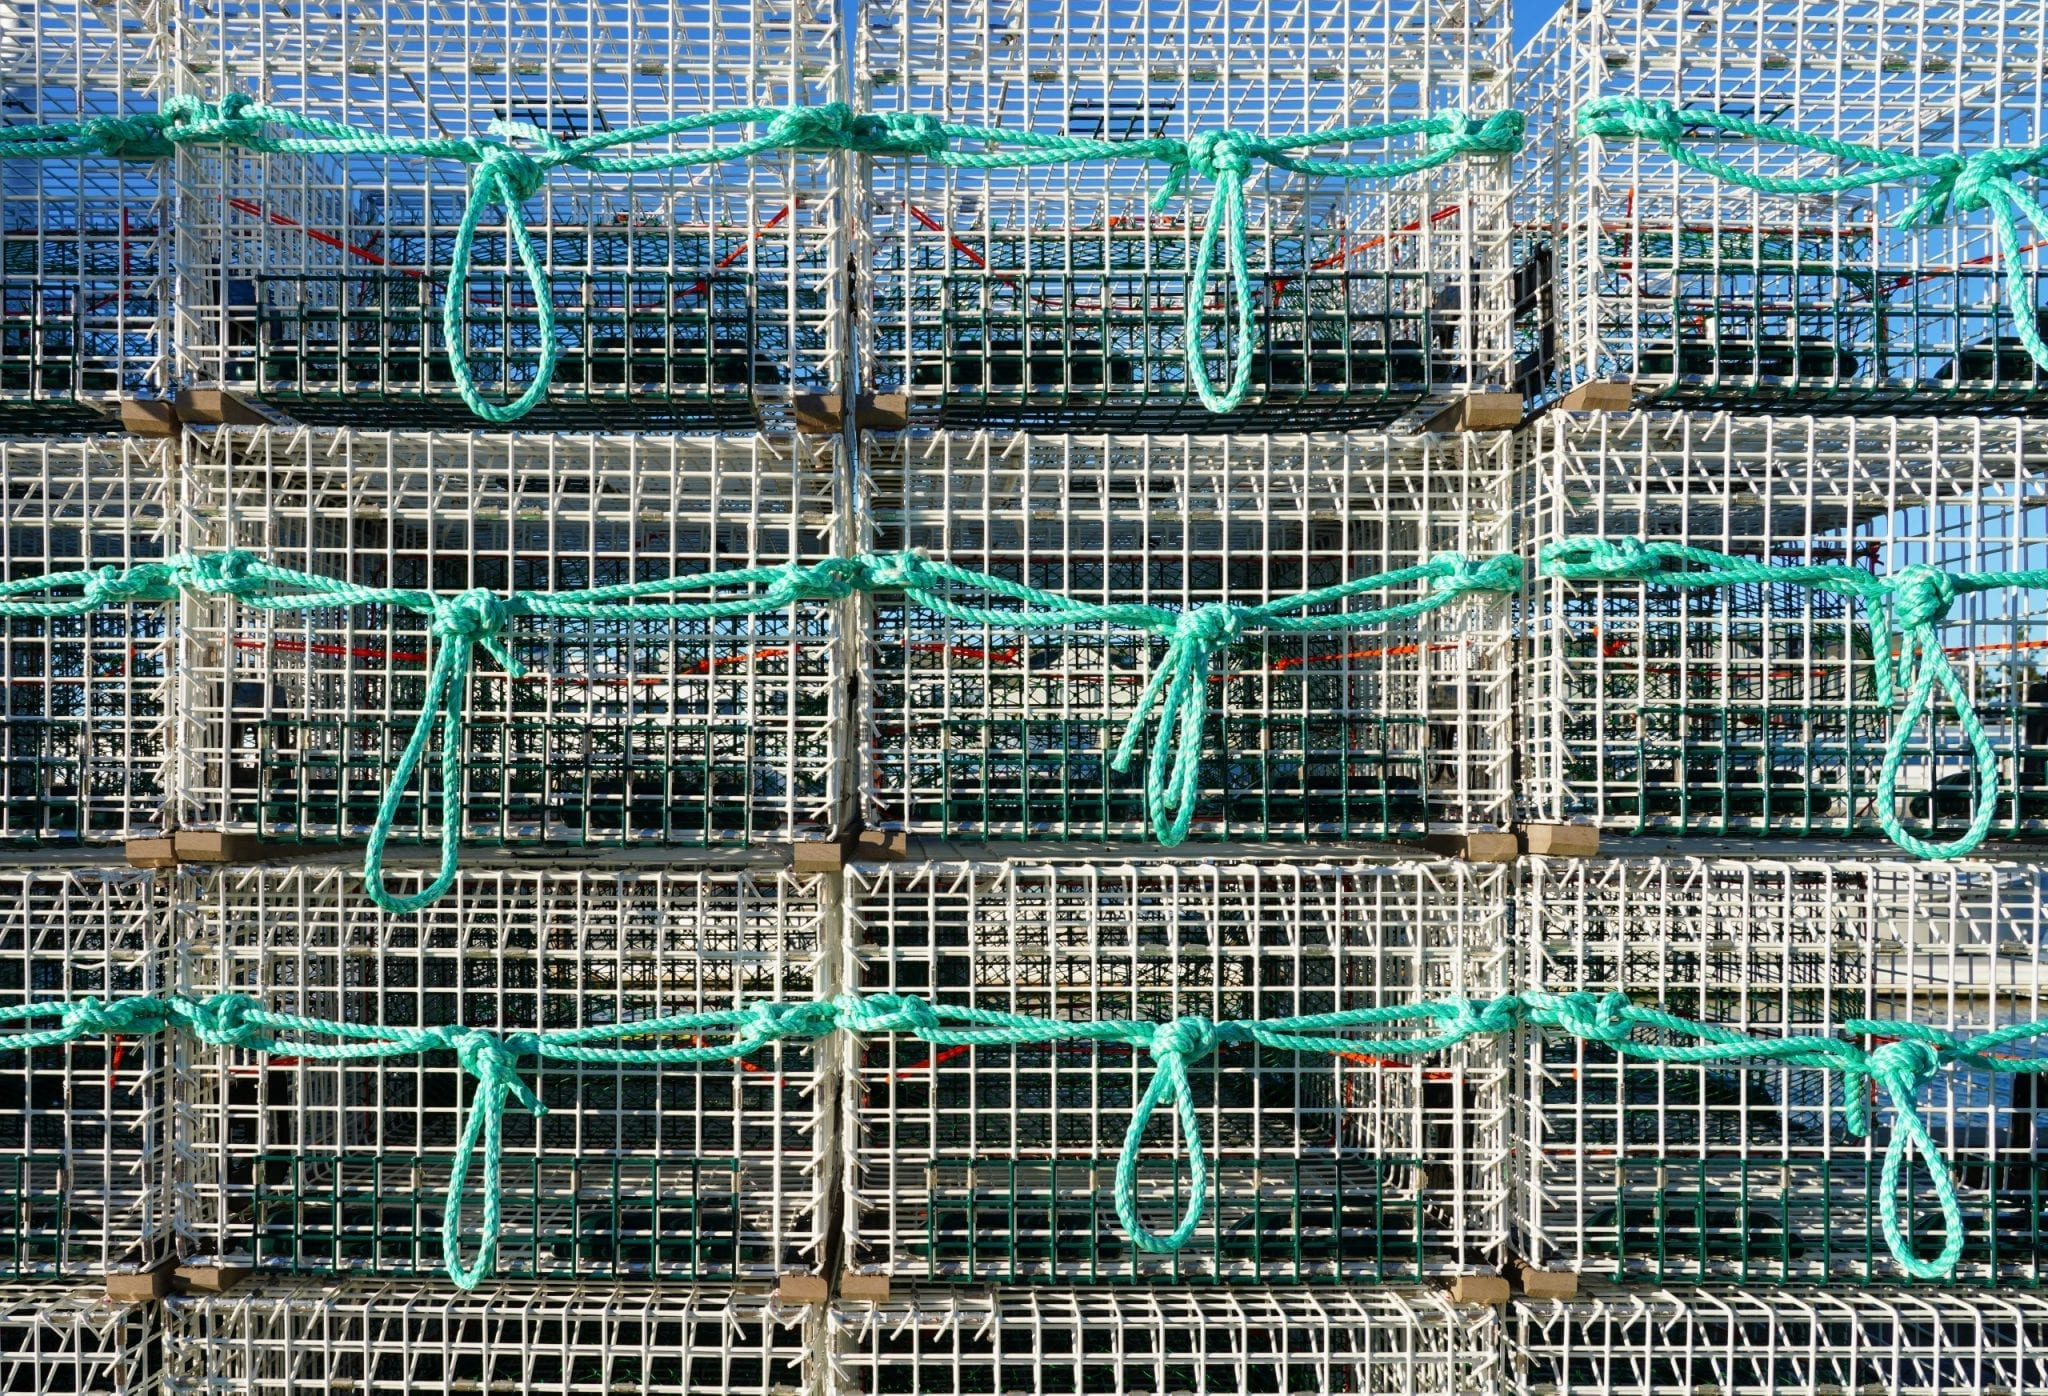 View,Of,Stacks,Of,Lobster,Traps,In,Maine,,United,States